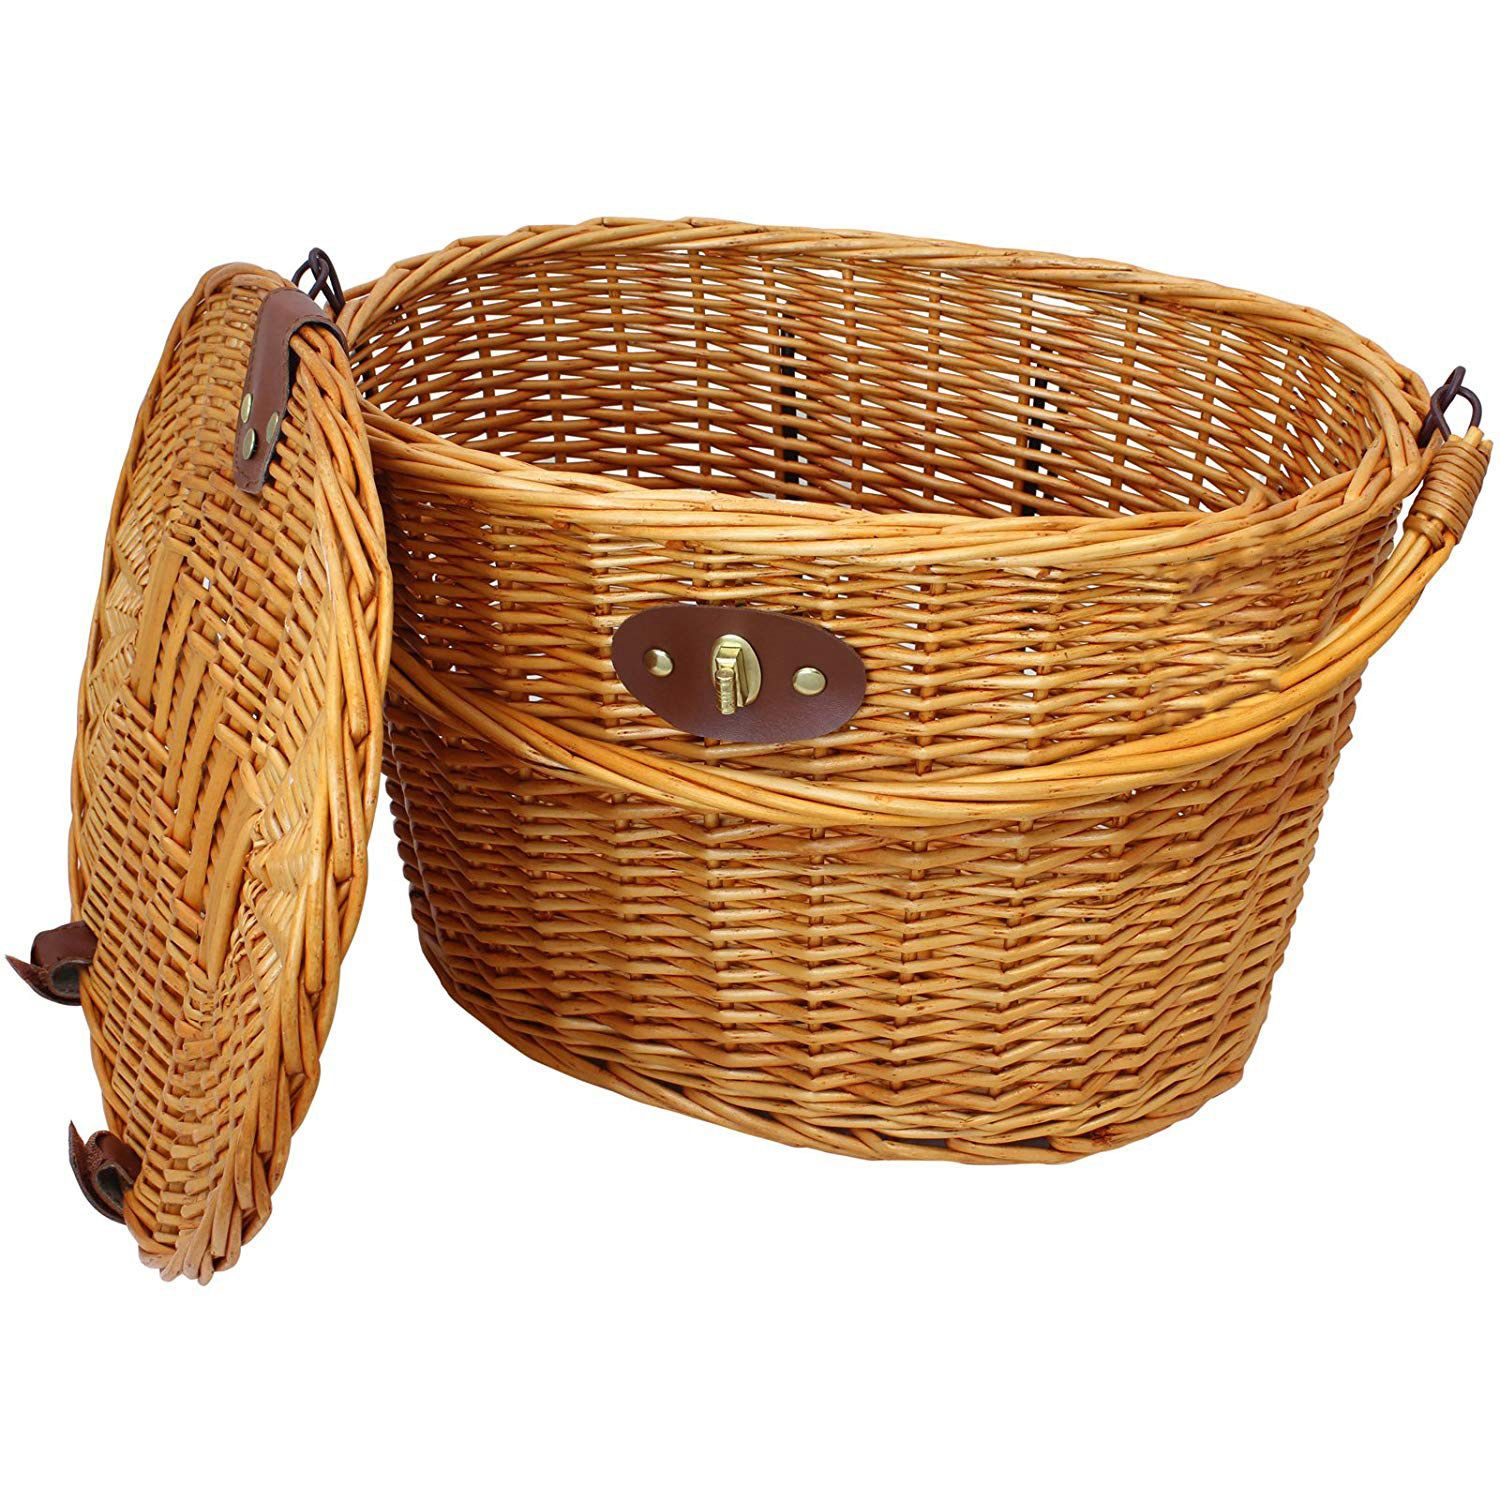 SEWS-Vintage Wicker Bicycle Basket with Folding Lid & Leather Straps